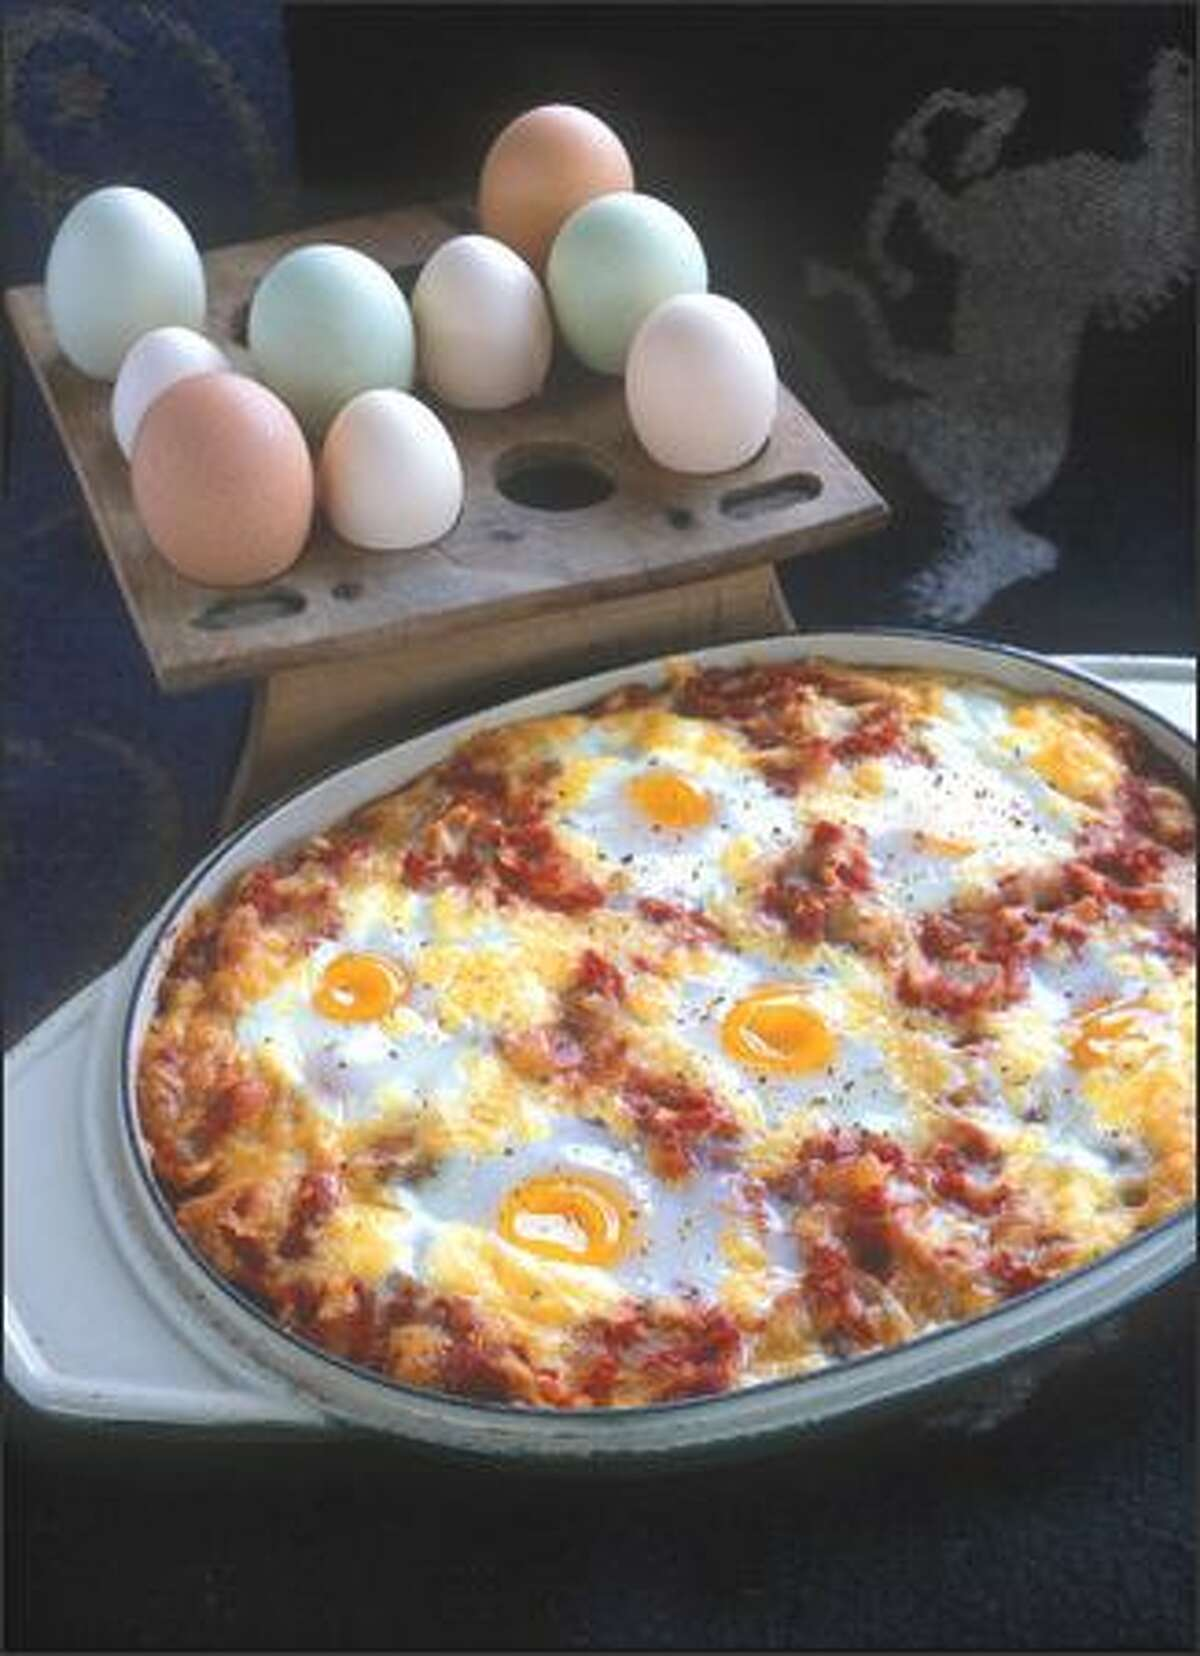 Eggs are cooked on a bed of tomato sauce and cheese for 15-20 minutes in Frontier Eggs from